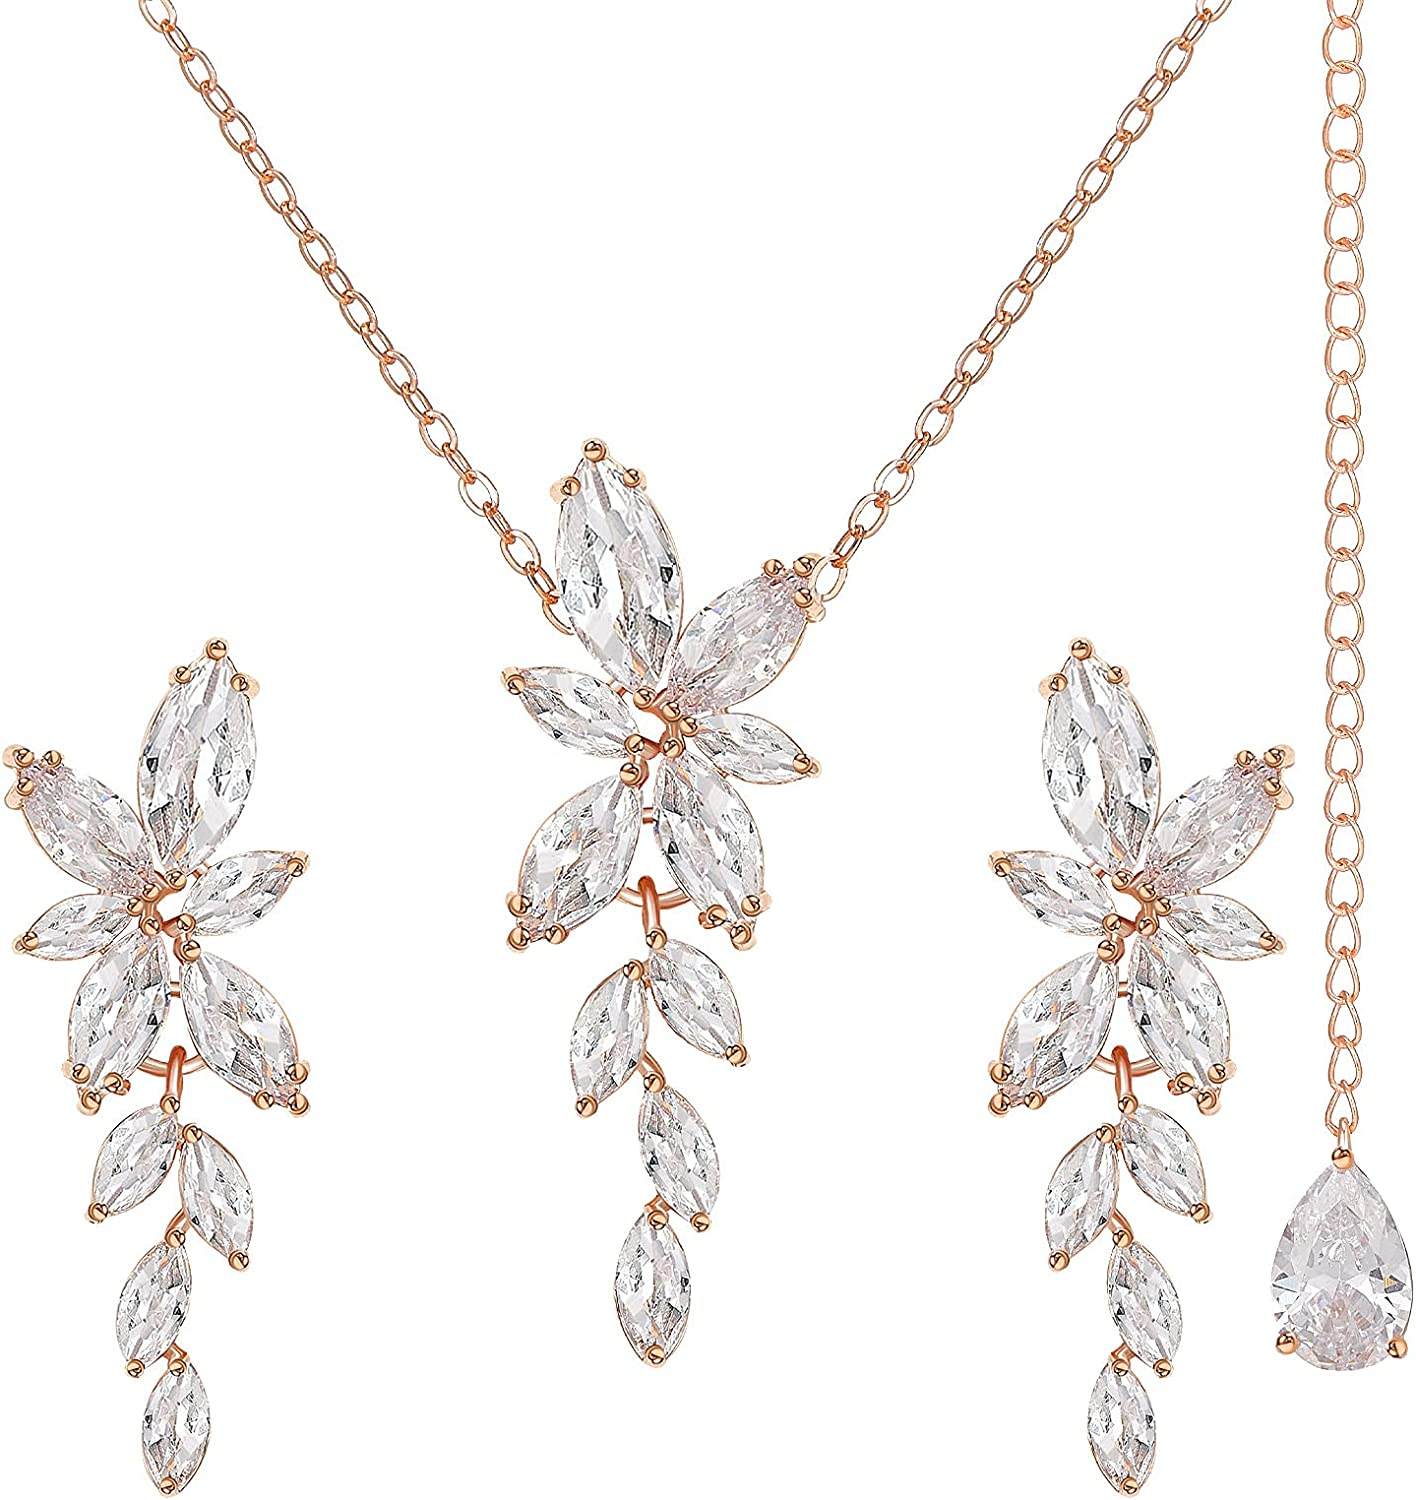 SWEETV Marquise Cubic Zirconia Wedding Jewelry Sets for Bridesmaids,Brides,Bridal Jewelry Sets for Wedding, Crystal Backdrop Necklace Dangle Earrings Sets for Women